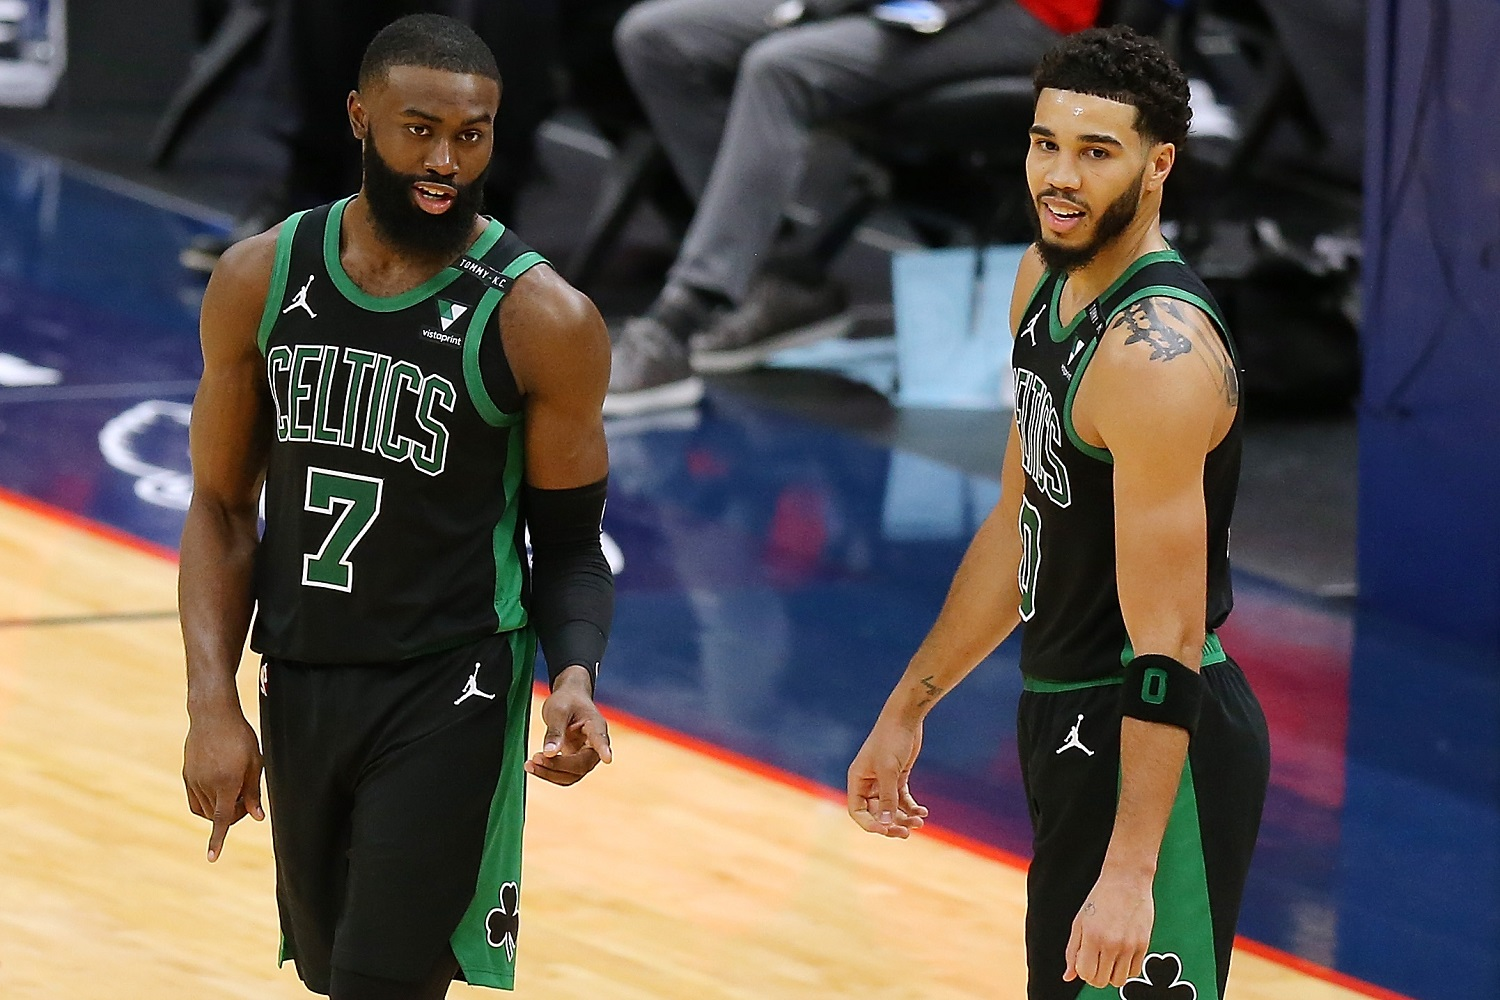 The Celtics' Latest Blow Has To Trigger an Overhaul in Order To Compete